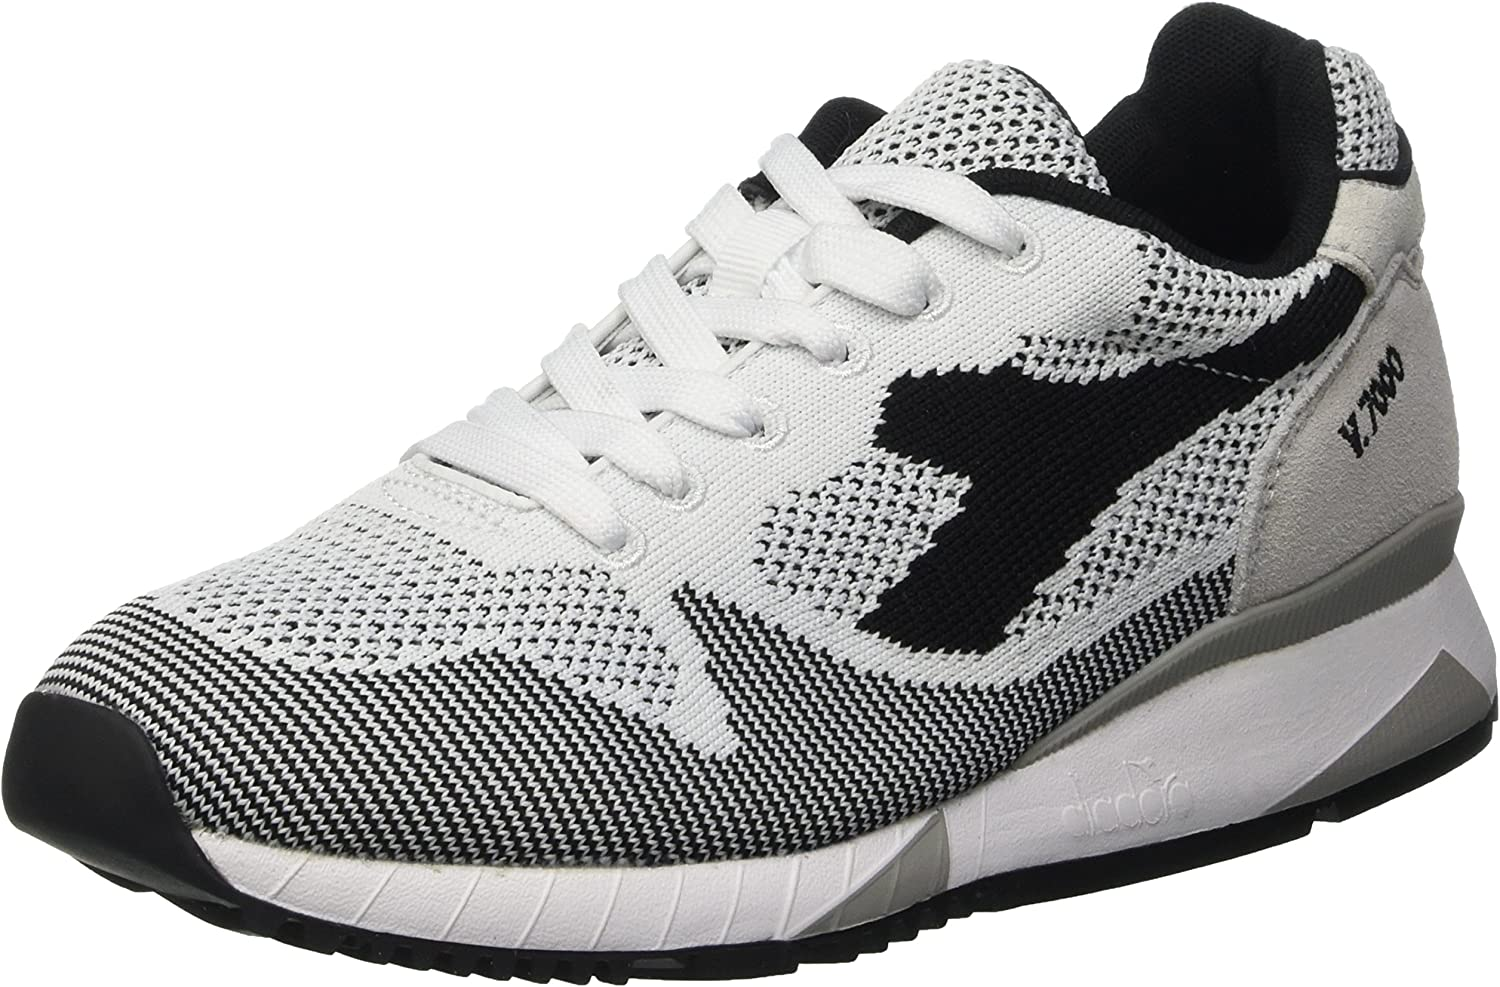 Diadora - Sport shoes V7000 WEAVE for man and woman